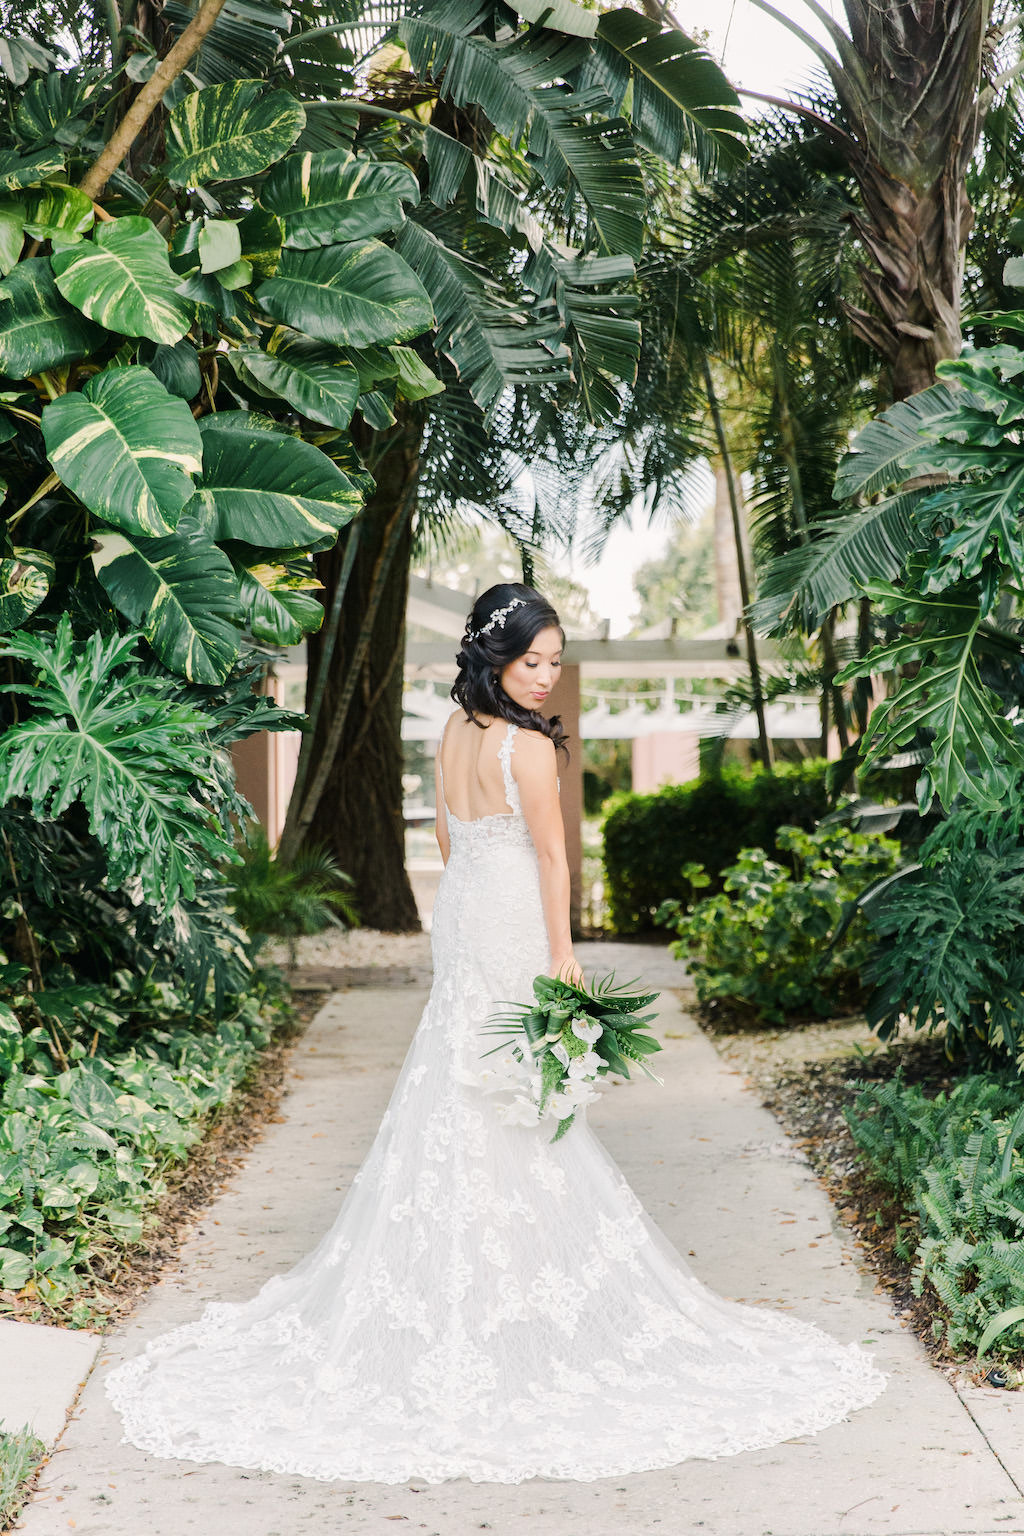 Modern, Tropical Florida Bridal Portrait, Green and White Bridal Bouquet with Palm Fronds, Monstera leaves, Boho Inspired White Martina Liana Wedding Dress with Open Back | Tampa Bay Florist Bruce Wayne Florals | Florida Resort Waterfront Wedding Venue The Vinoy Renaissance St. Petersburg Resort & Golf Club | Hair and Makeup Artist Michele Renee The Studio